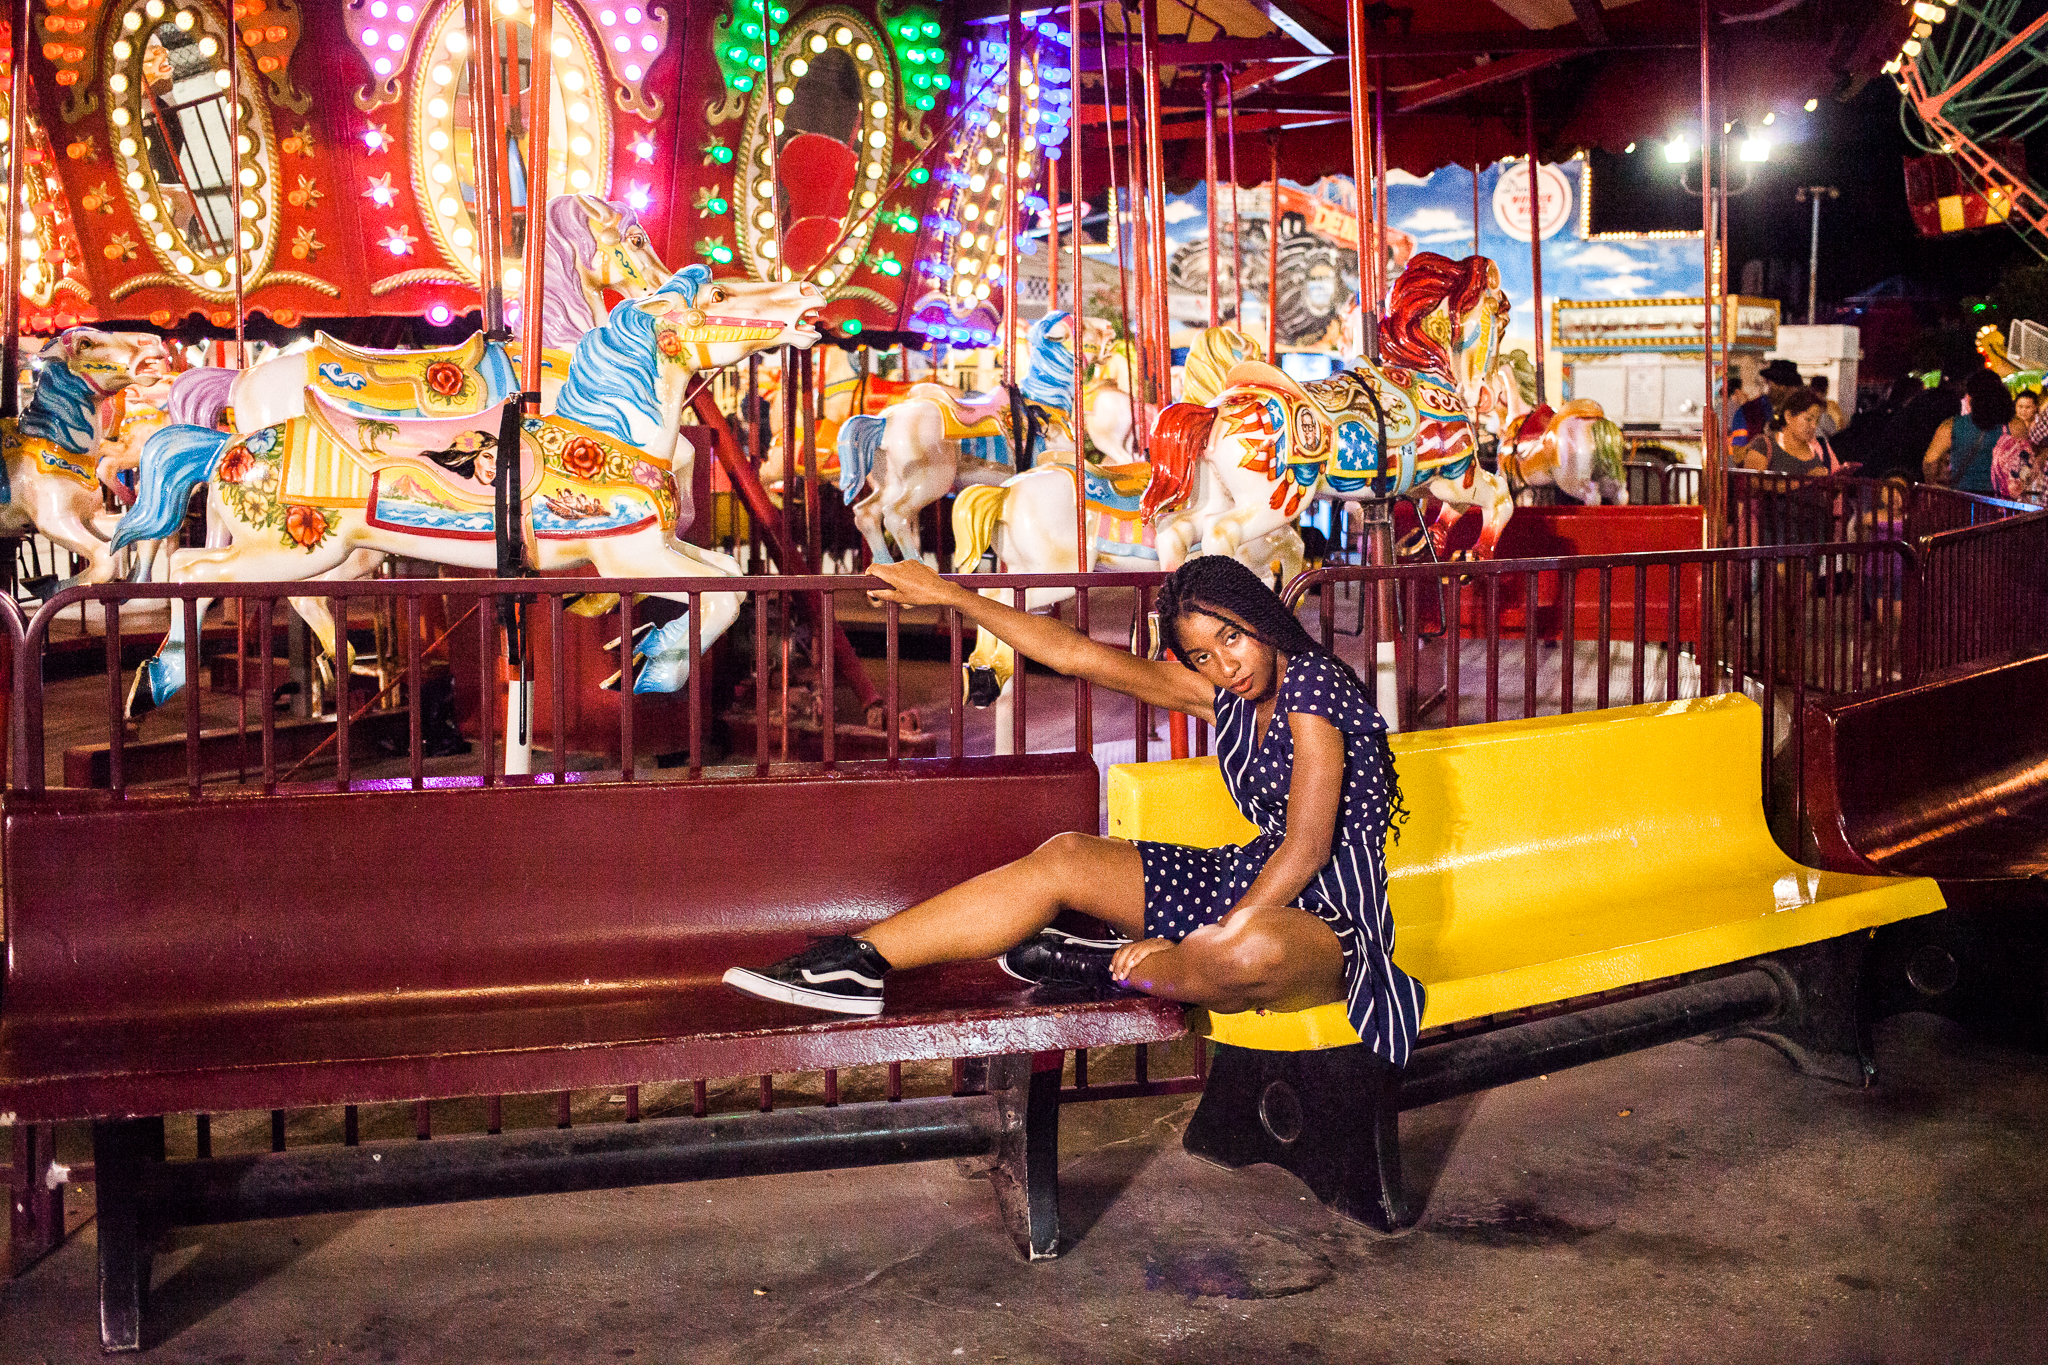 whomstudio_iman-artwell-freeman_coney-island_nyc_0097-web.jpg